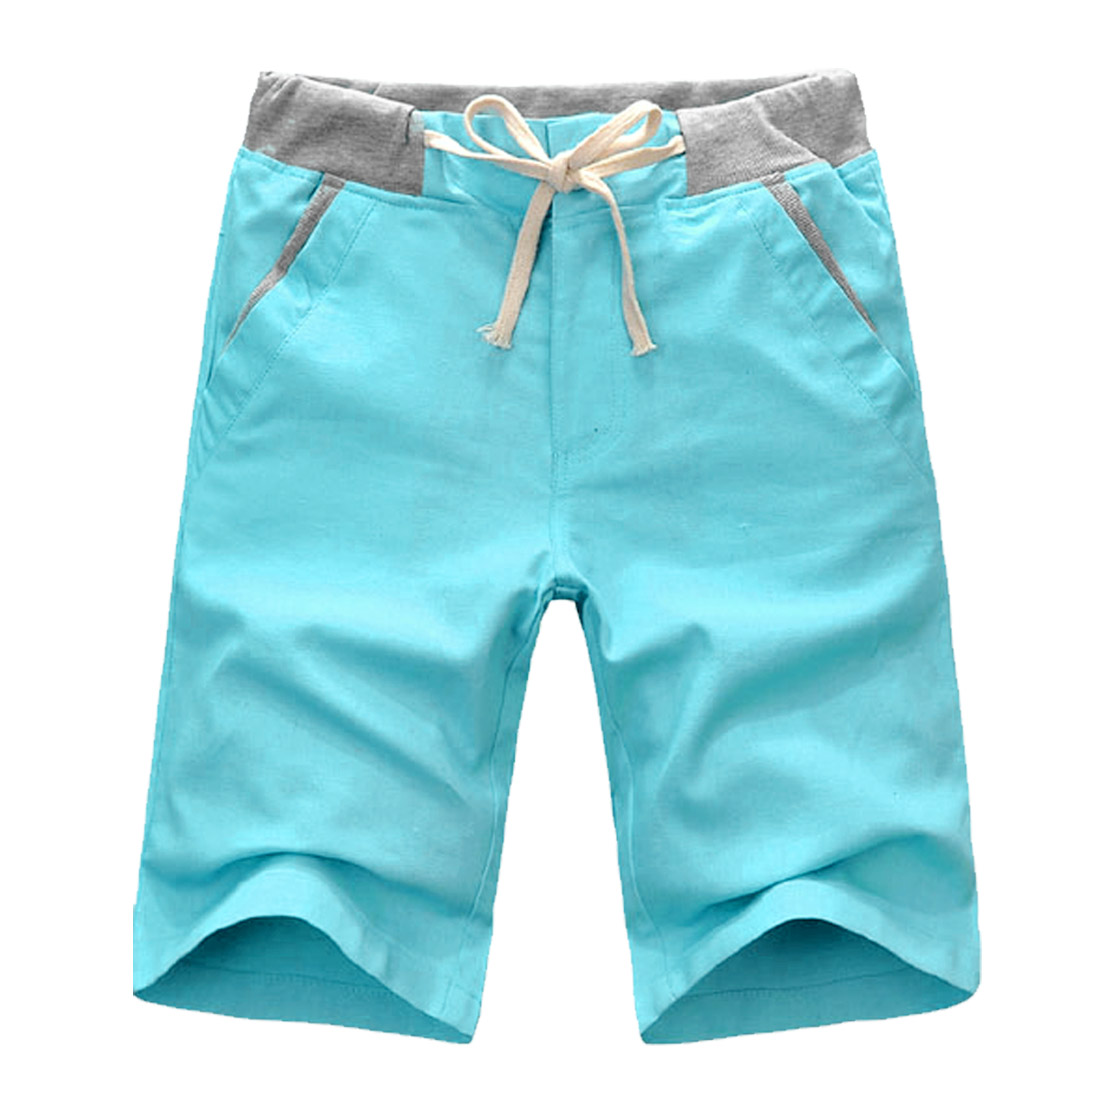 Man Slant Pockets Flax Color Contrast Shorts Pants Cyan W31